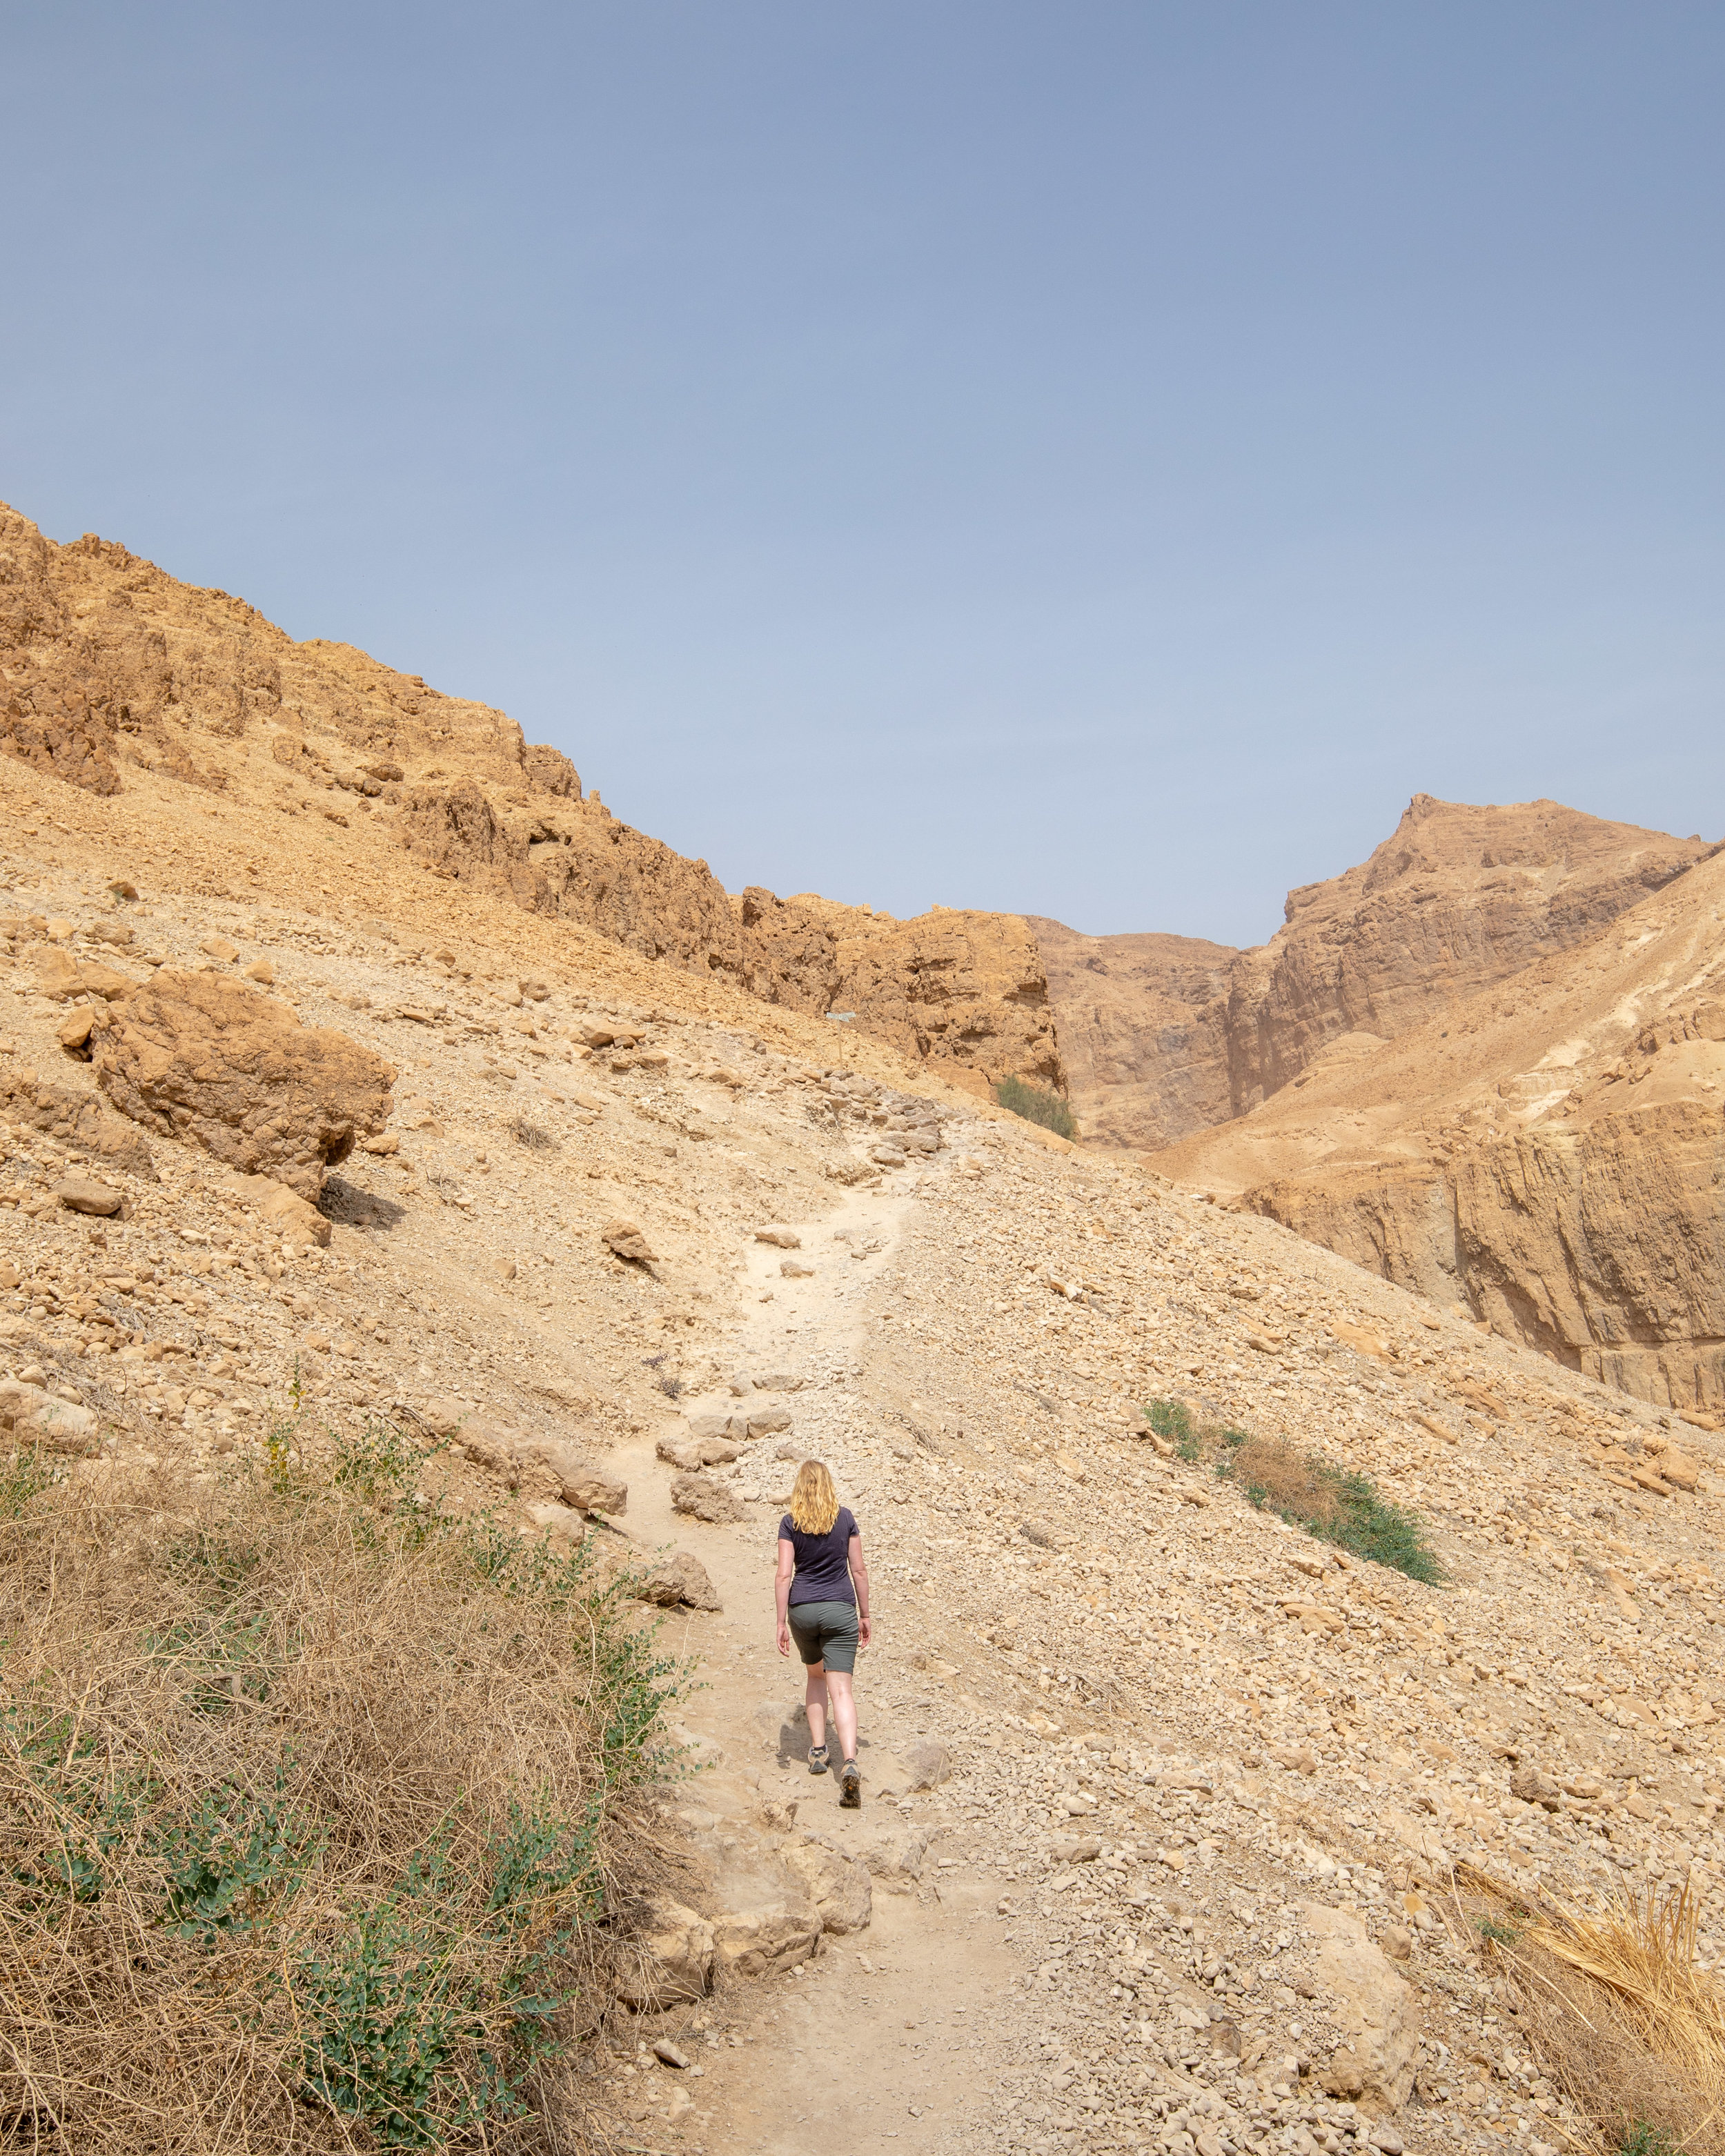 The hike up to Ein Gedi Spring